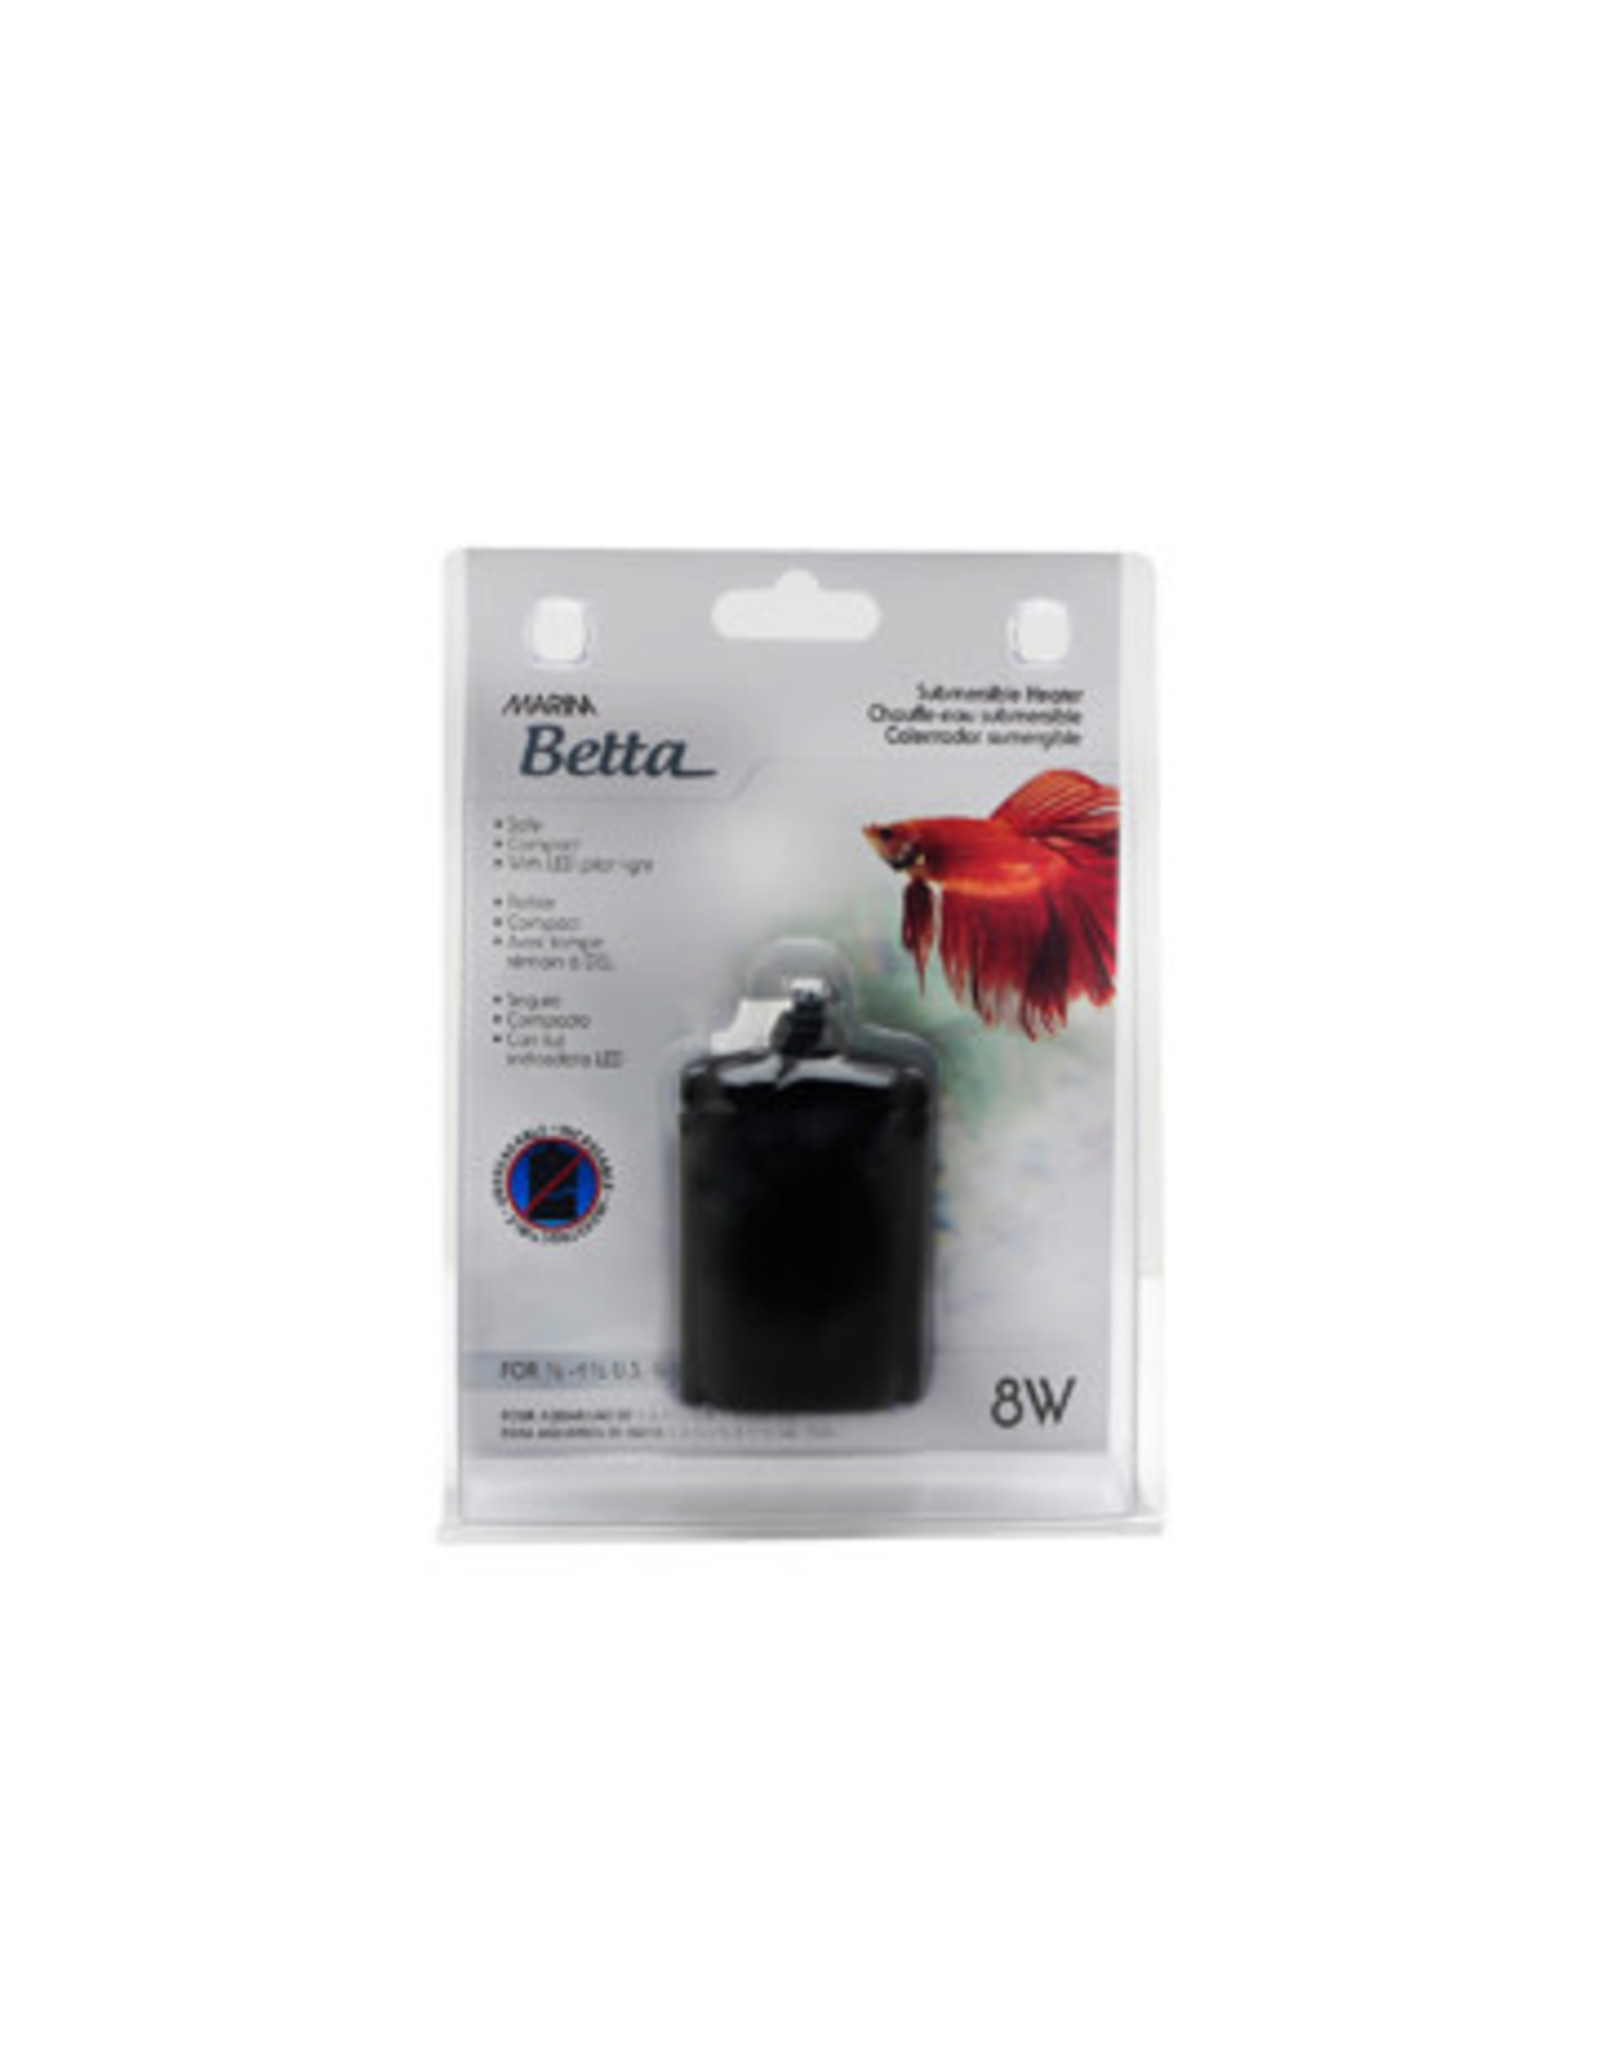 Marina Marina Betta Submersible Heater - 8 W